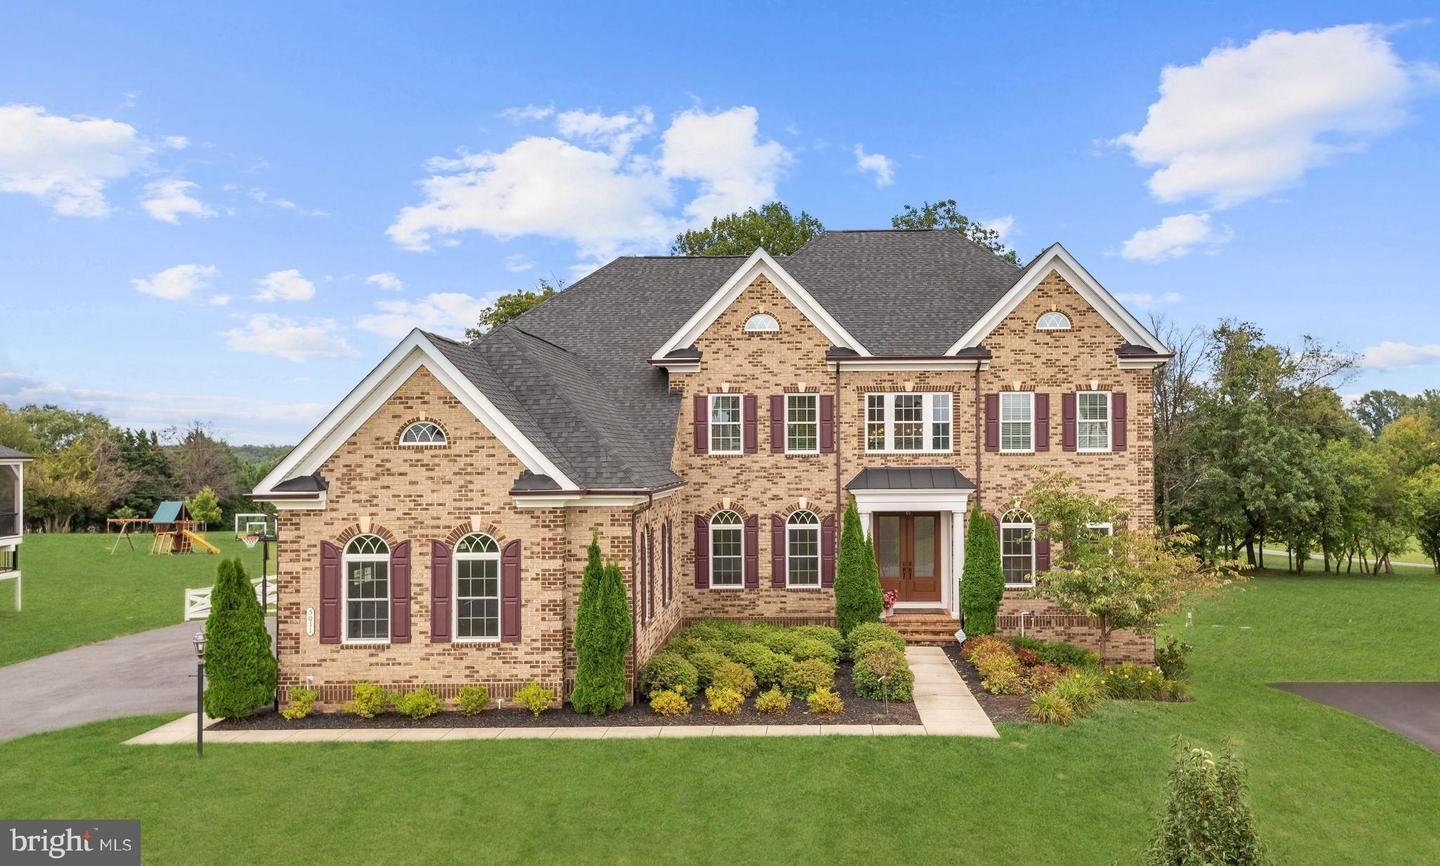 5011 ALTOGETHER WAY, Clarksville, MD 21029 - MLS#: MDHW293978